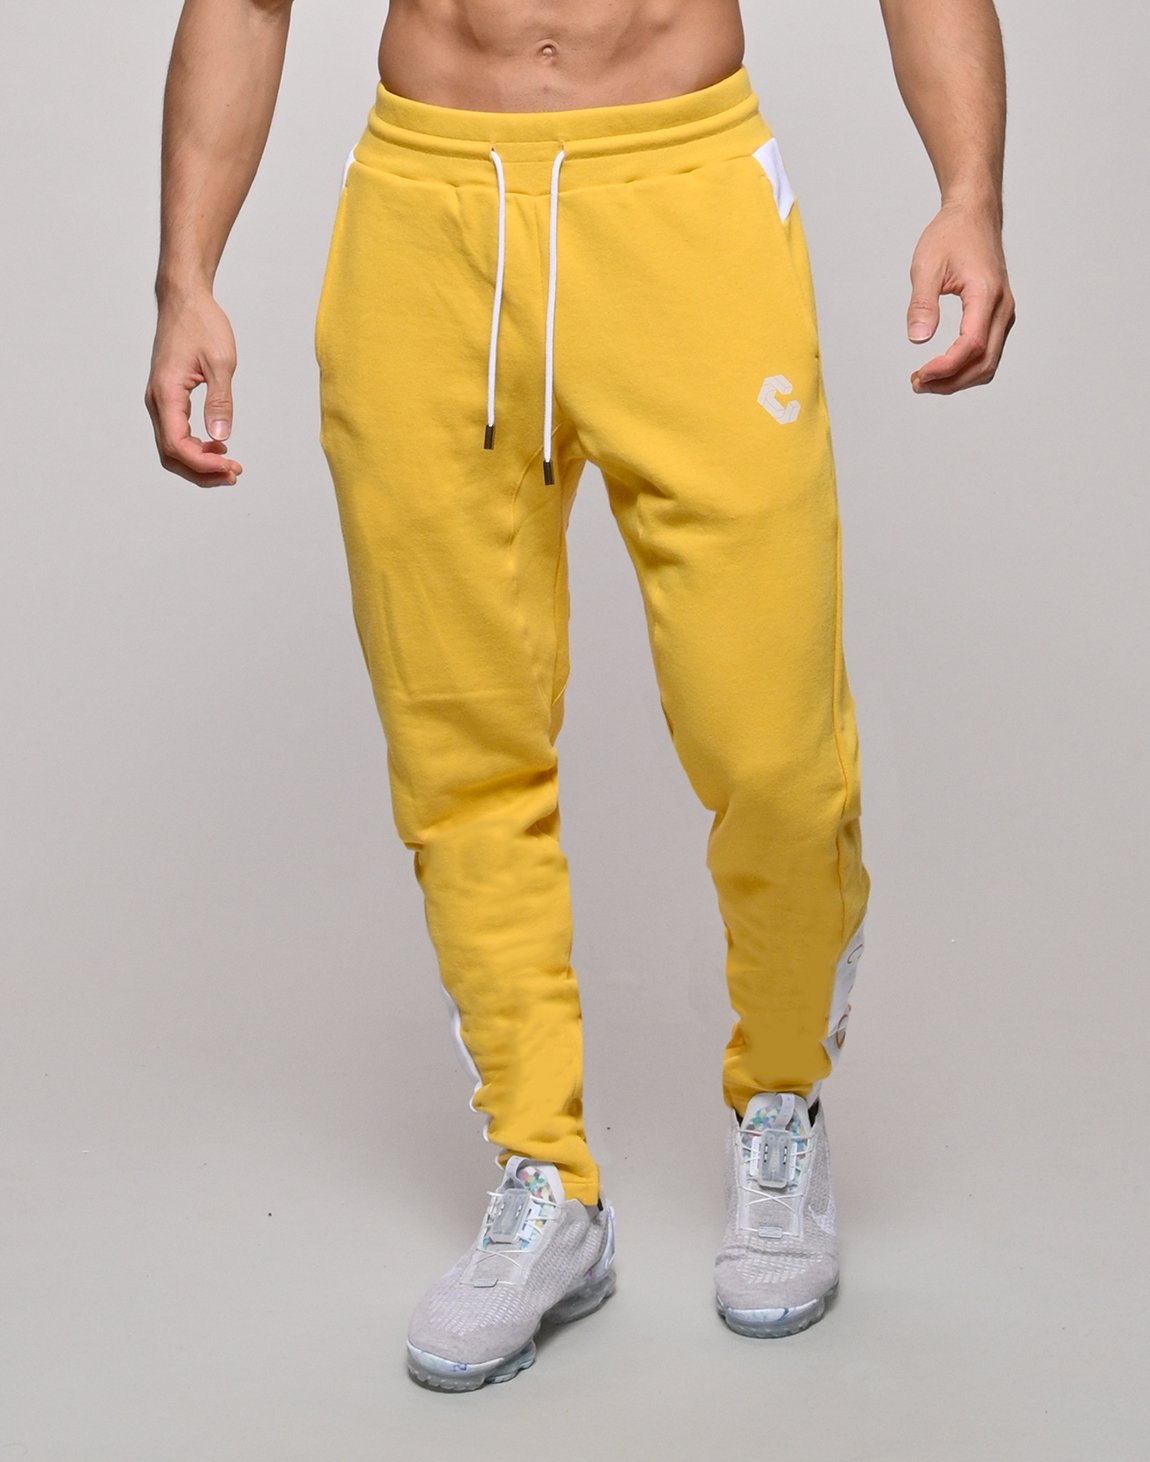 <img class='new_mark_img1' src='https://img.shop-pro.jp/img/new/icons55.gif' style='border:none;display:inline;margin:0px;padding:0px;width:auto;' />CRONOS SIDE CALF LOGO SWEAT PANTS【YELLOW×WHITE】